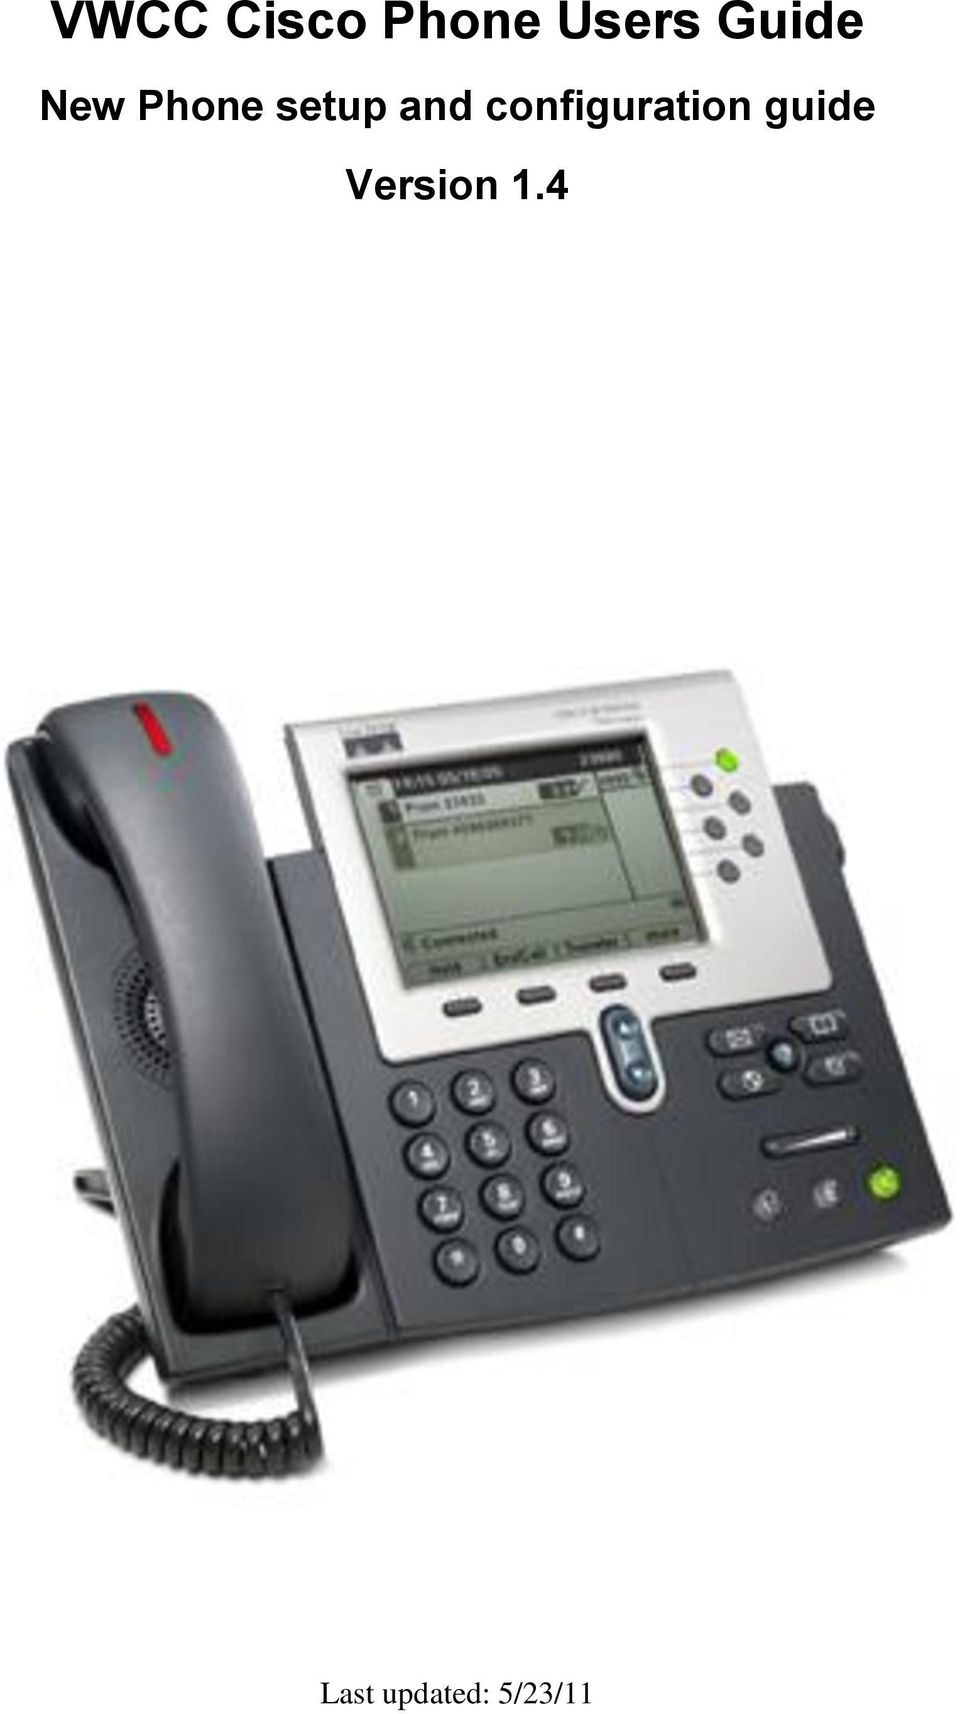 VWCC Cisco Phone Users Guide New Phone setup and configuration guide